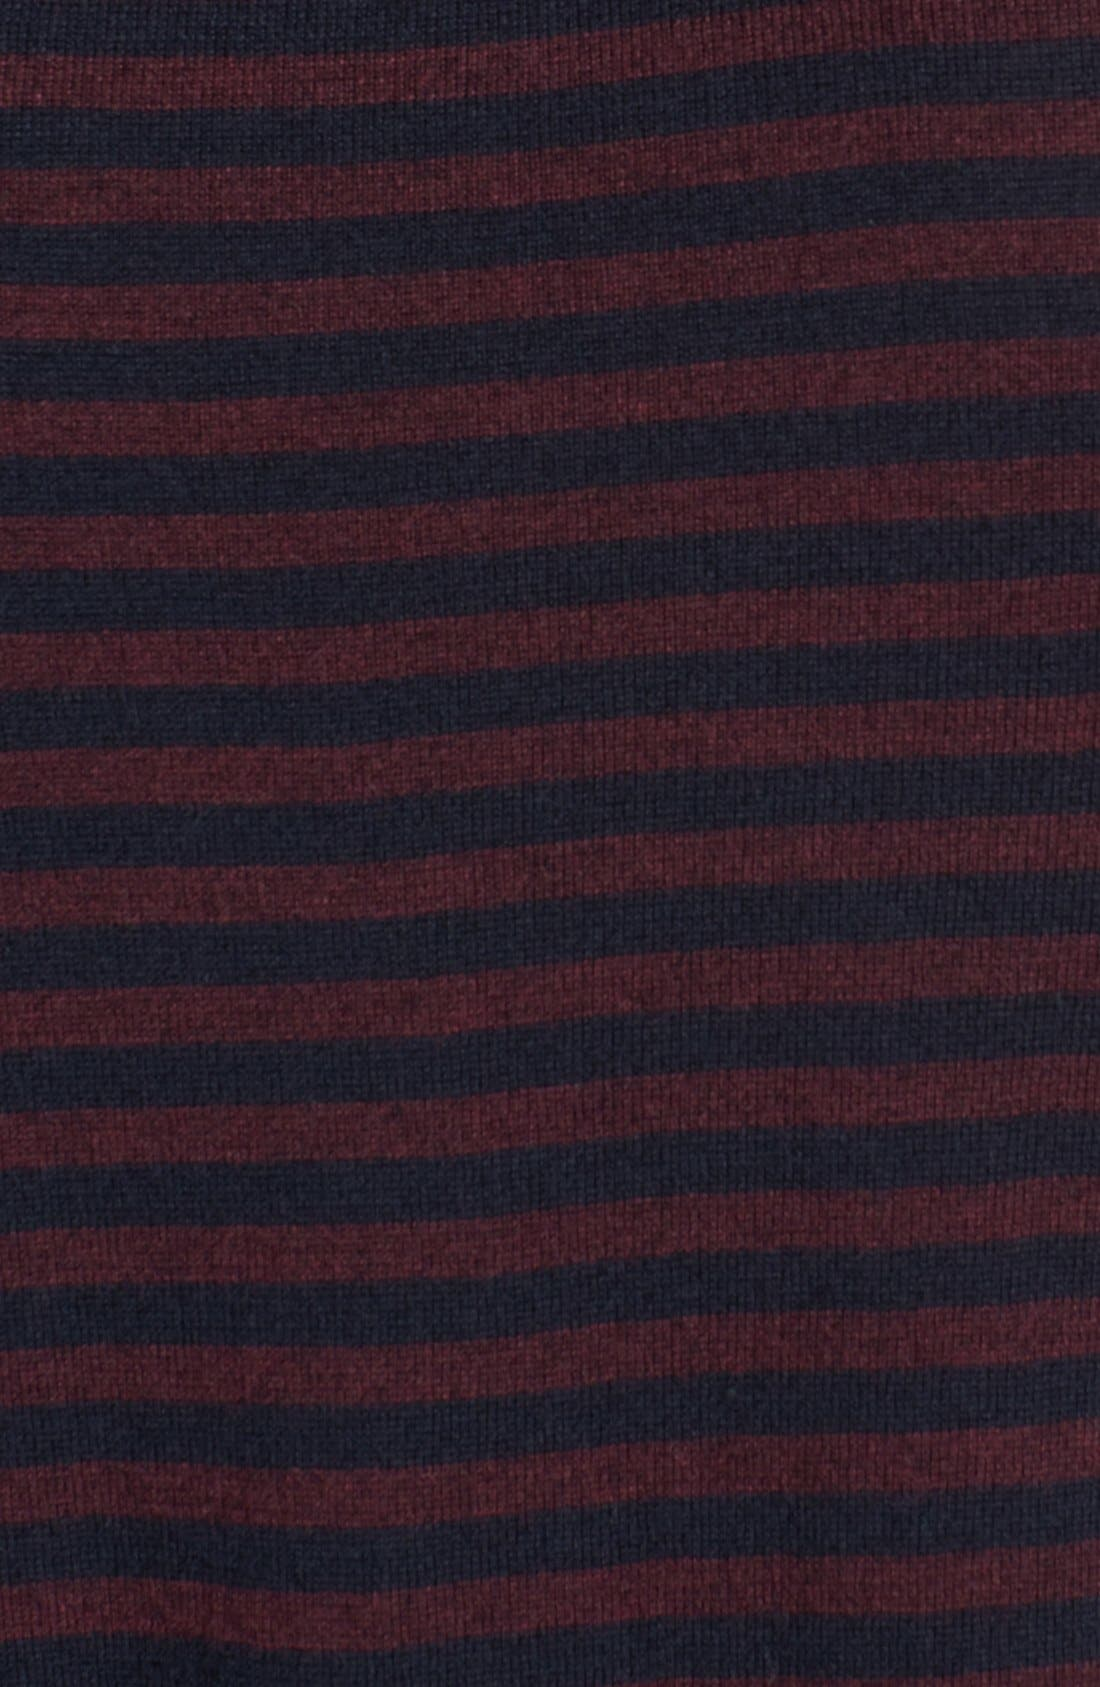 Alternate Image 3  - Ted Baker London 'Moseley' Striped Crewneck Sweater